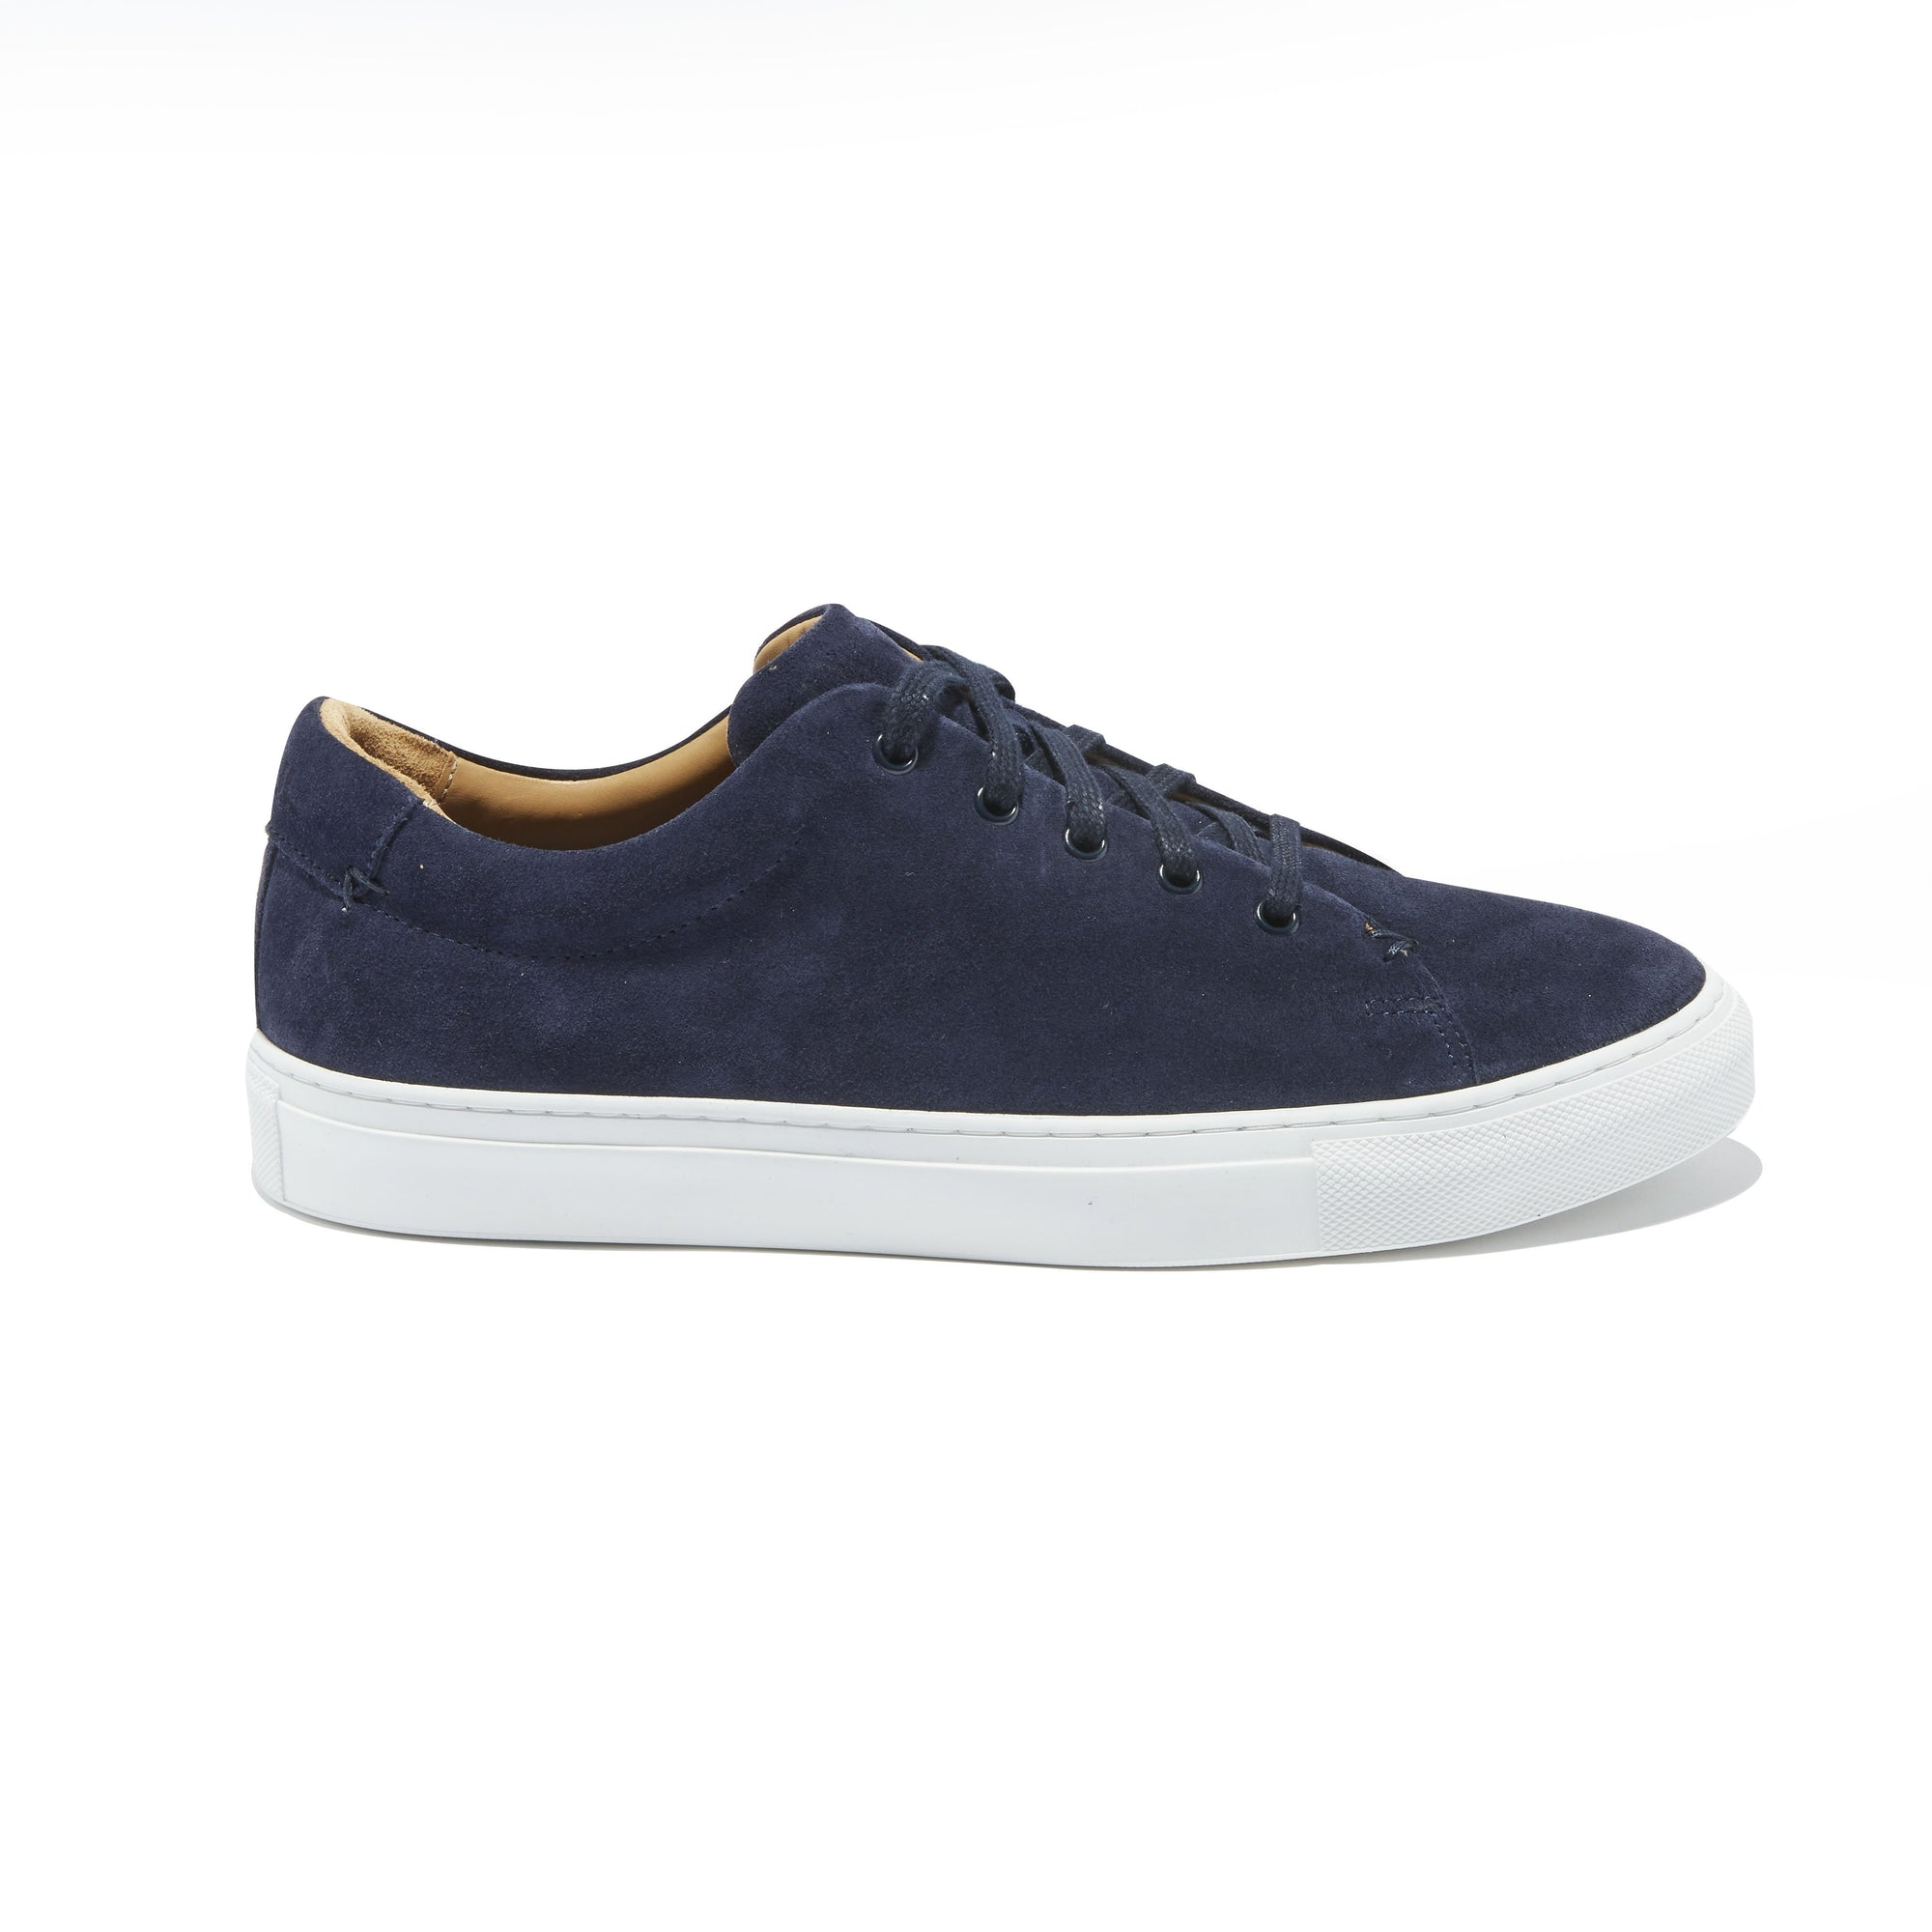 Men's Braga Sneaker in Navy Suede - The HiO Life